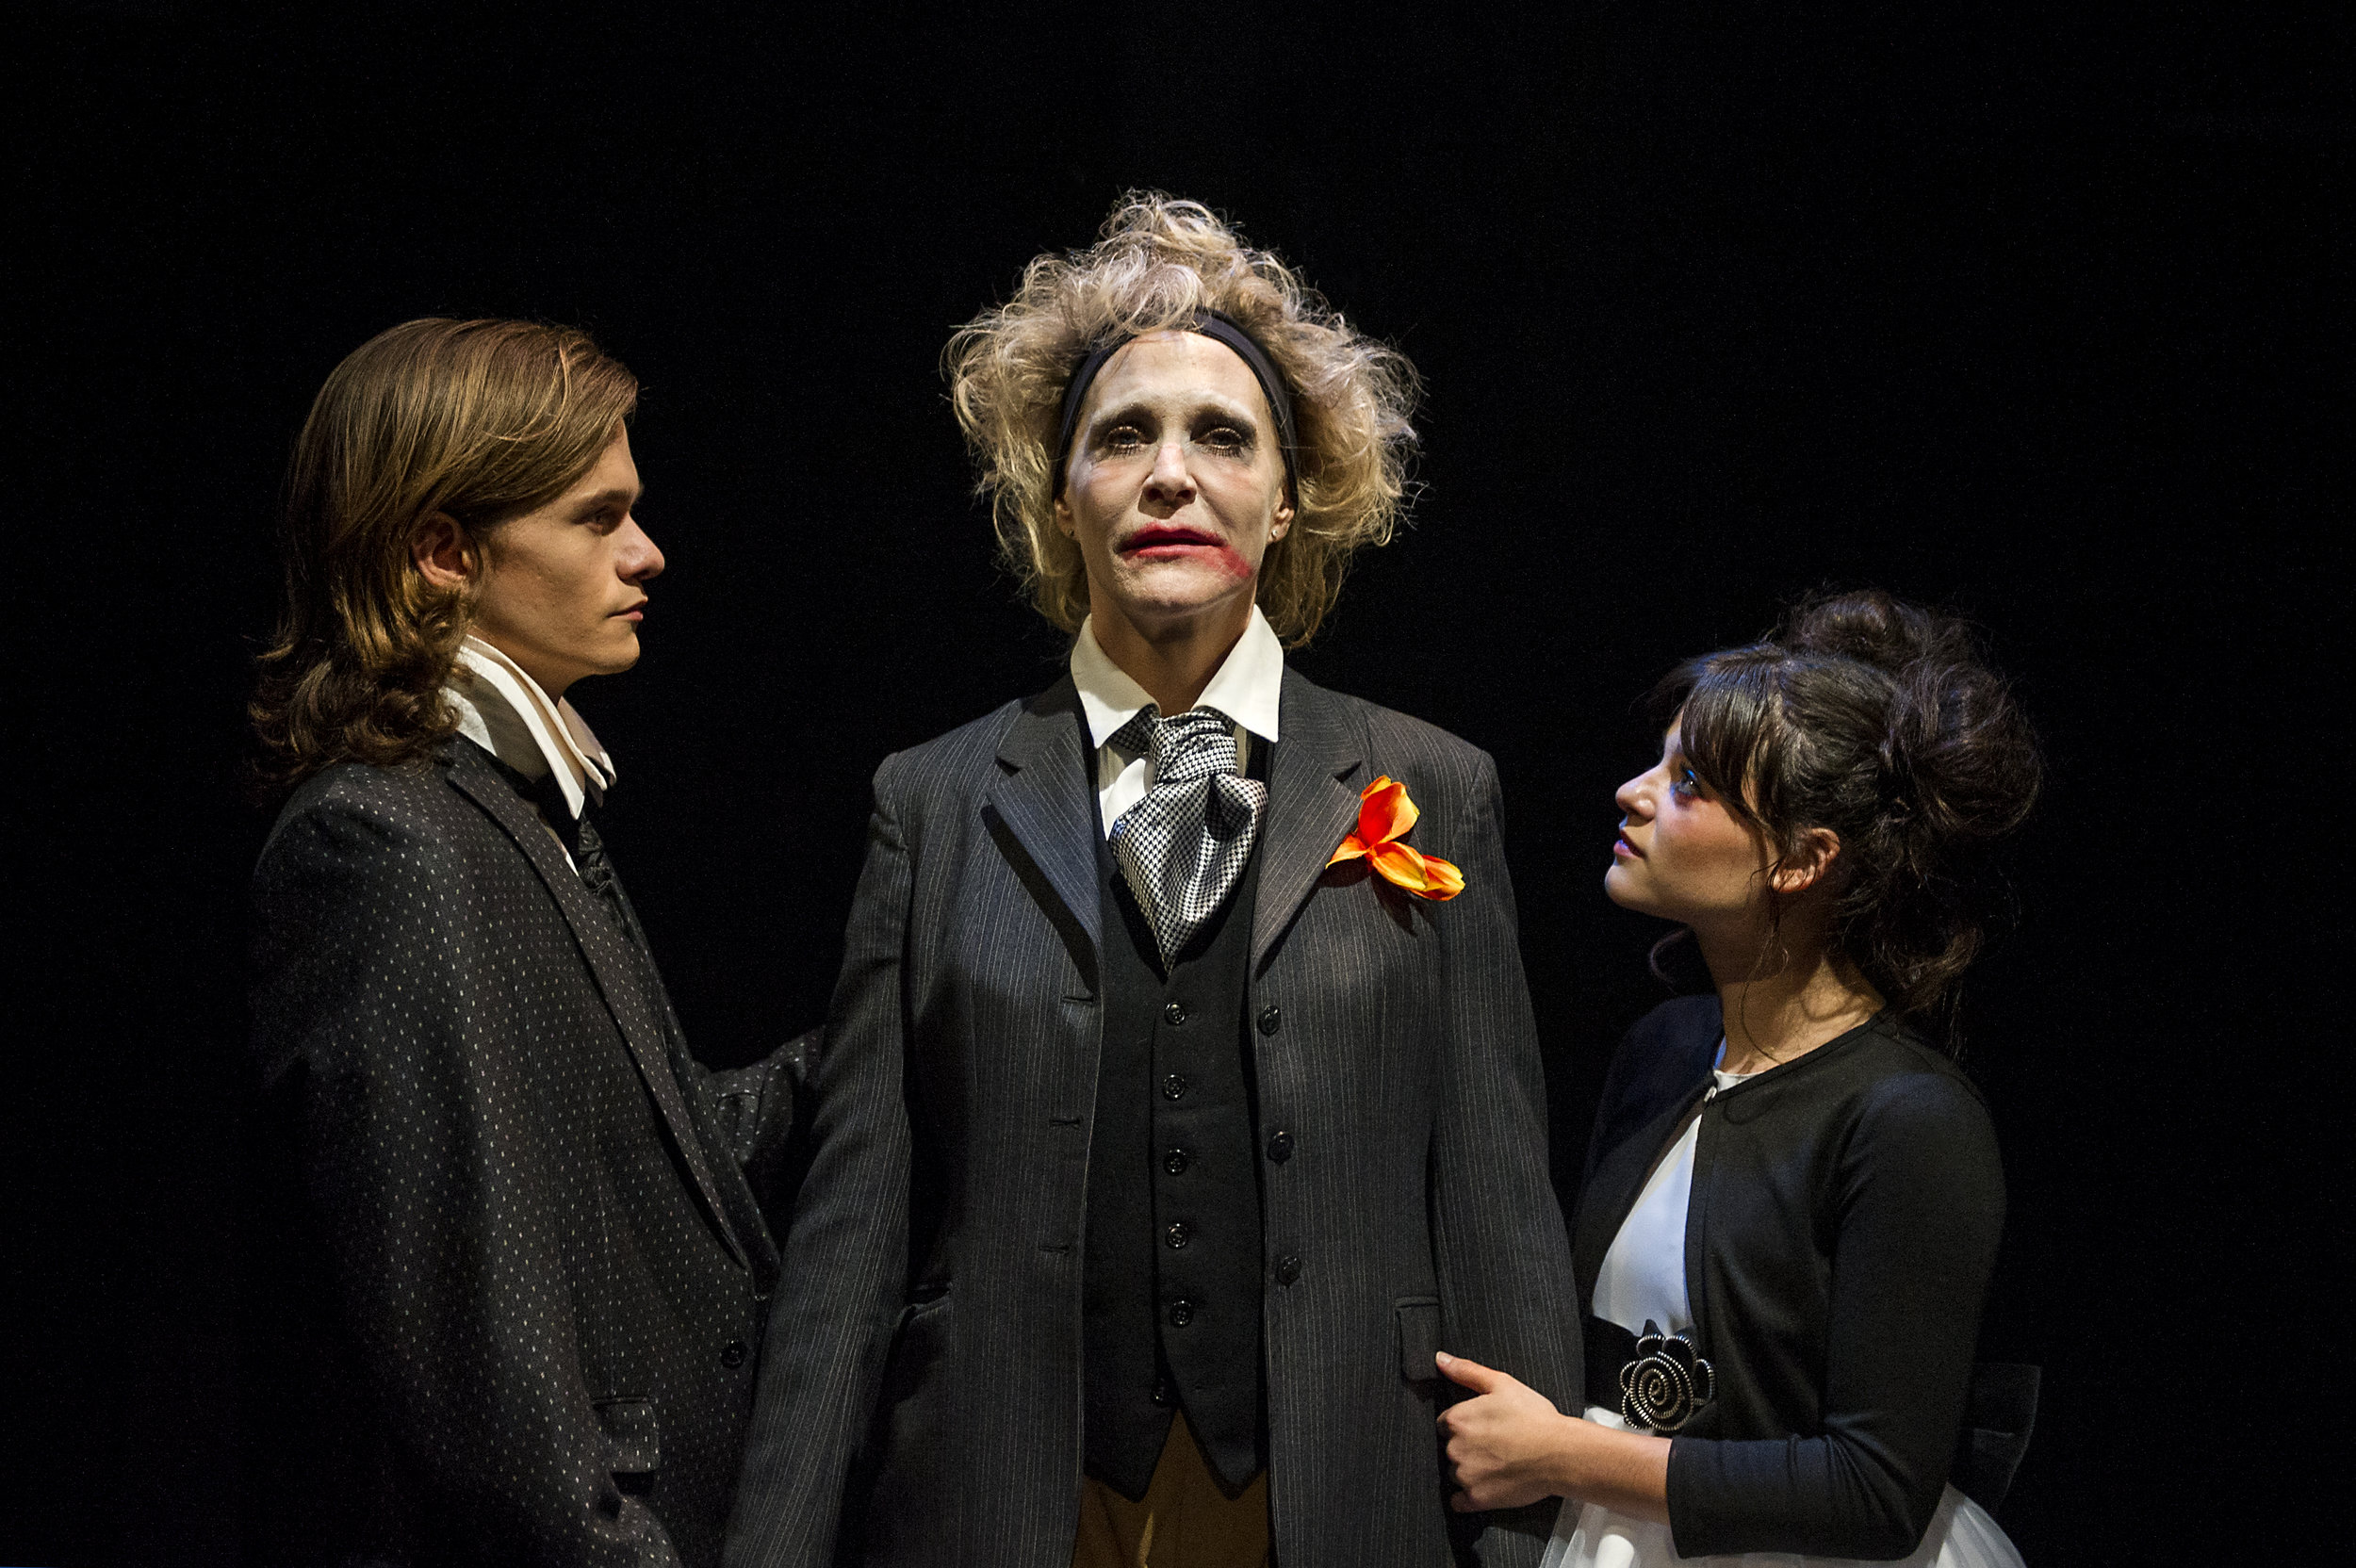 Alex Might (The Boy), Jennifer Jewell* (The Man with a Flower in His Mouth), and Carleigh Chirico* (The Girl)